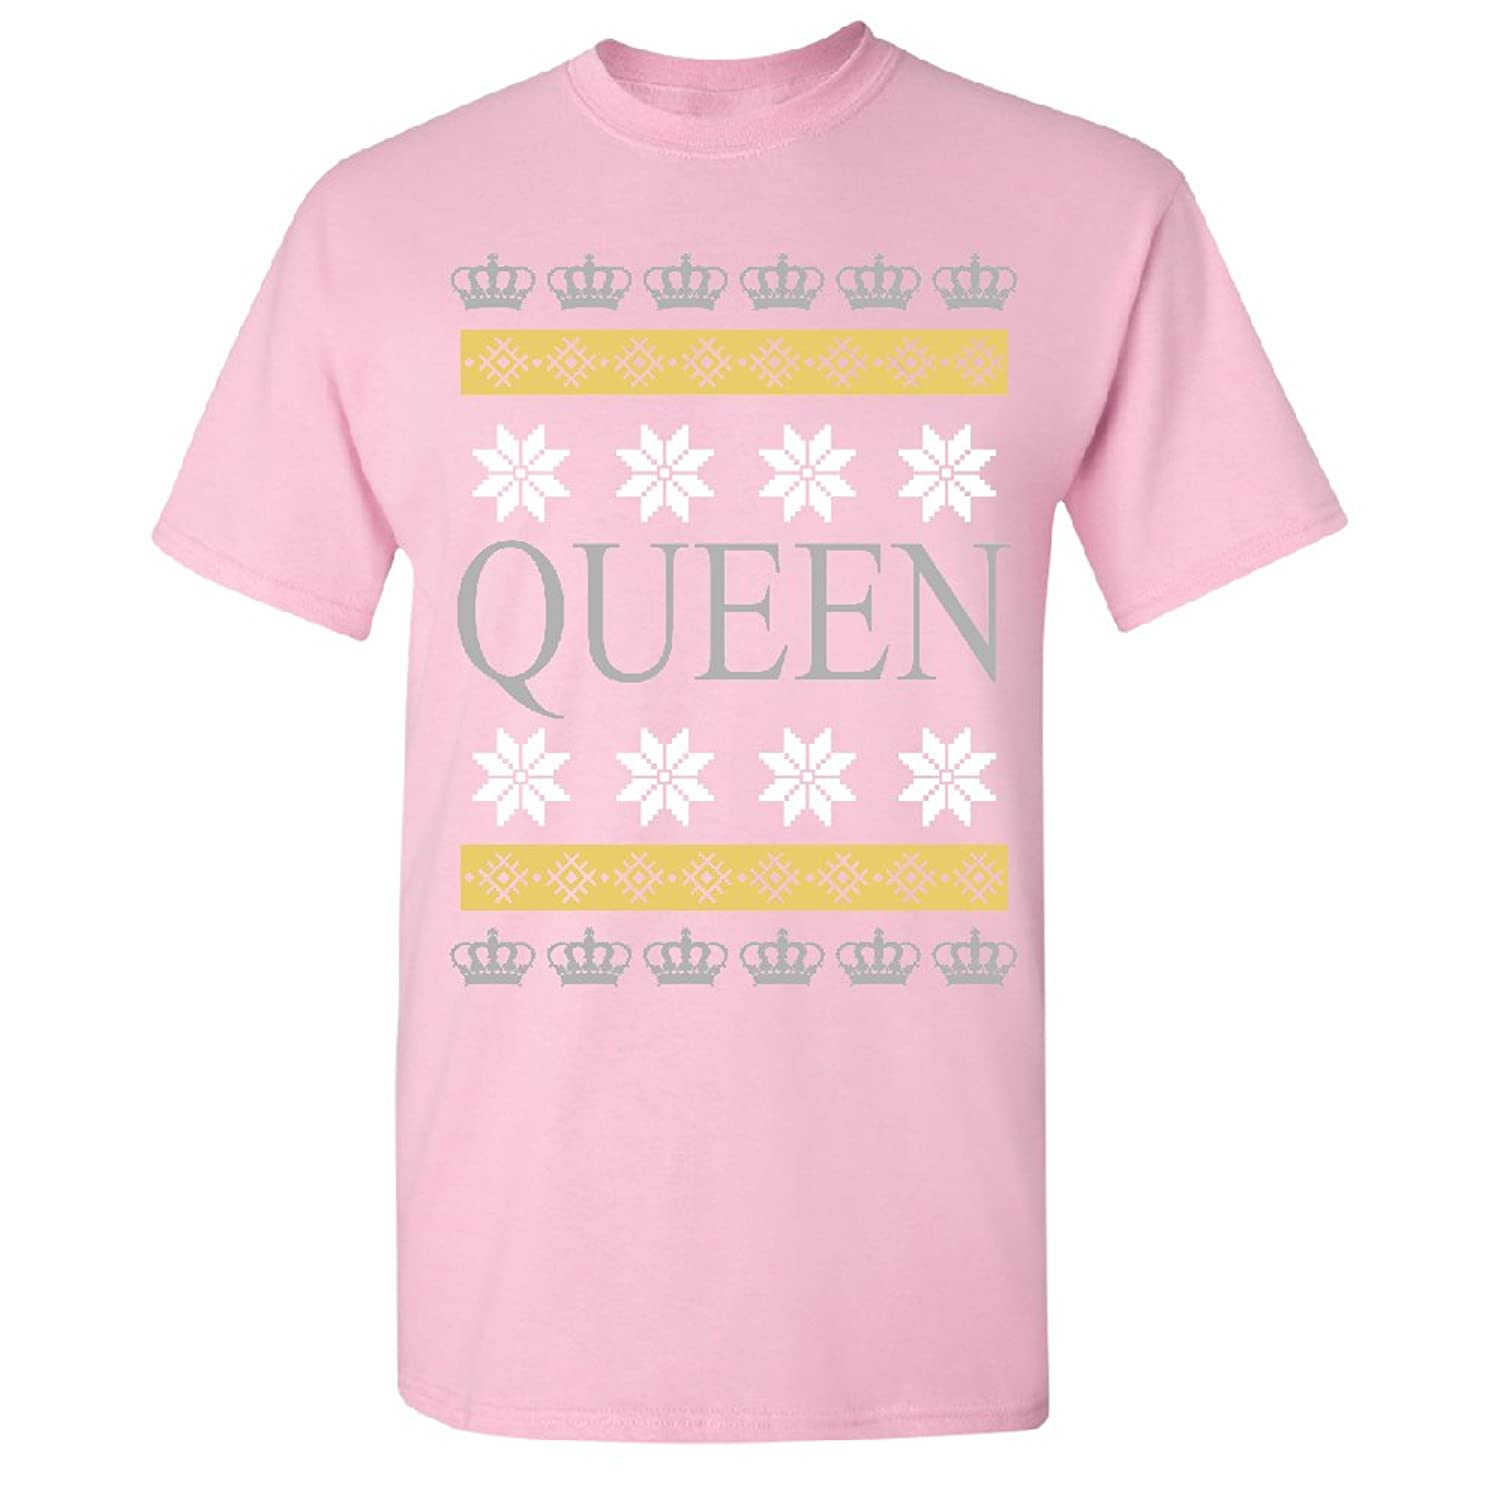 Queen Ugly Sweater Unisex T-shirt Glitter Crown Ladies Couple Tee